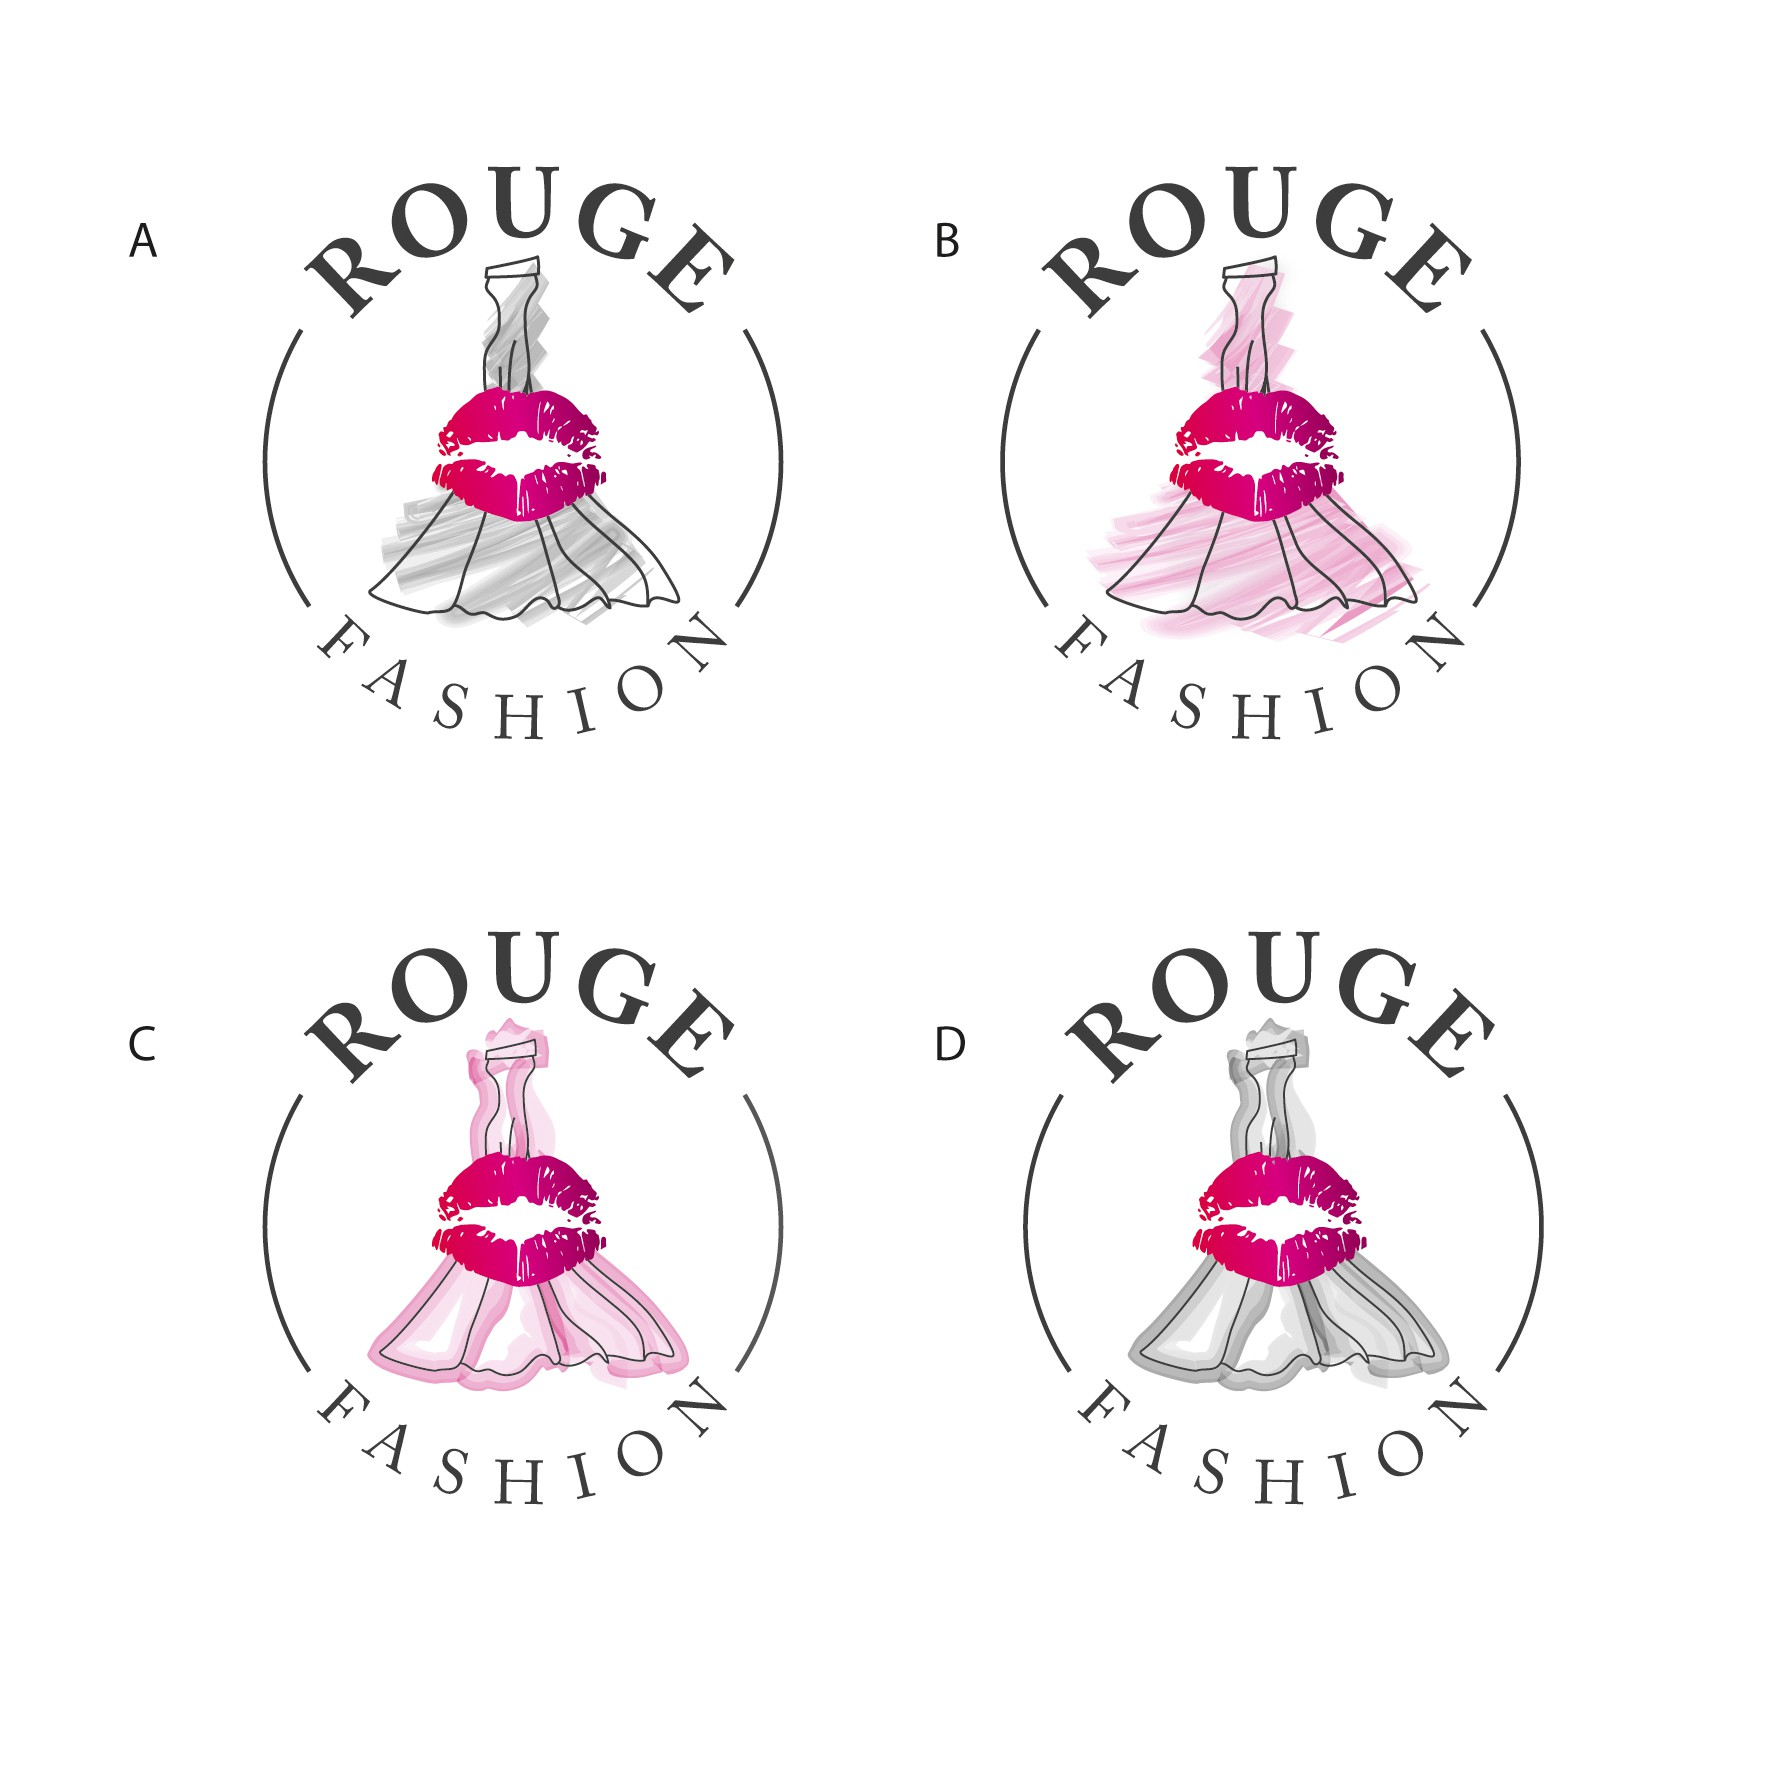 Developing a new logo for a Ladies Fashion Design Boutique